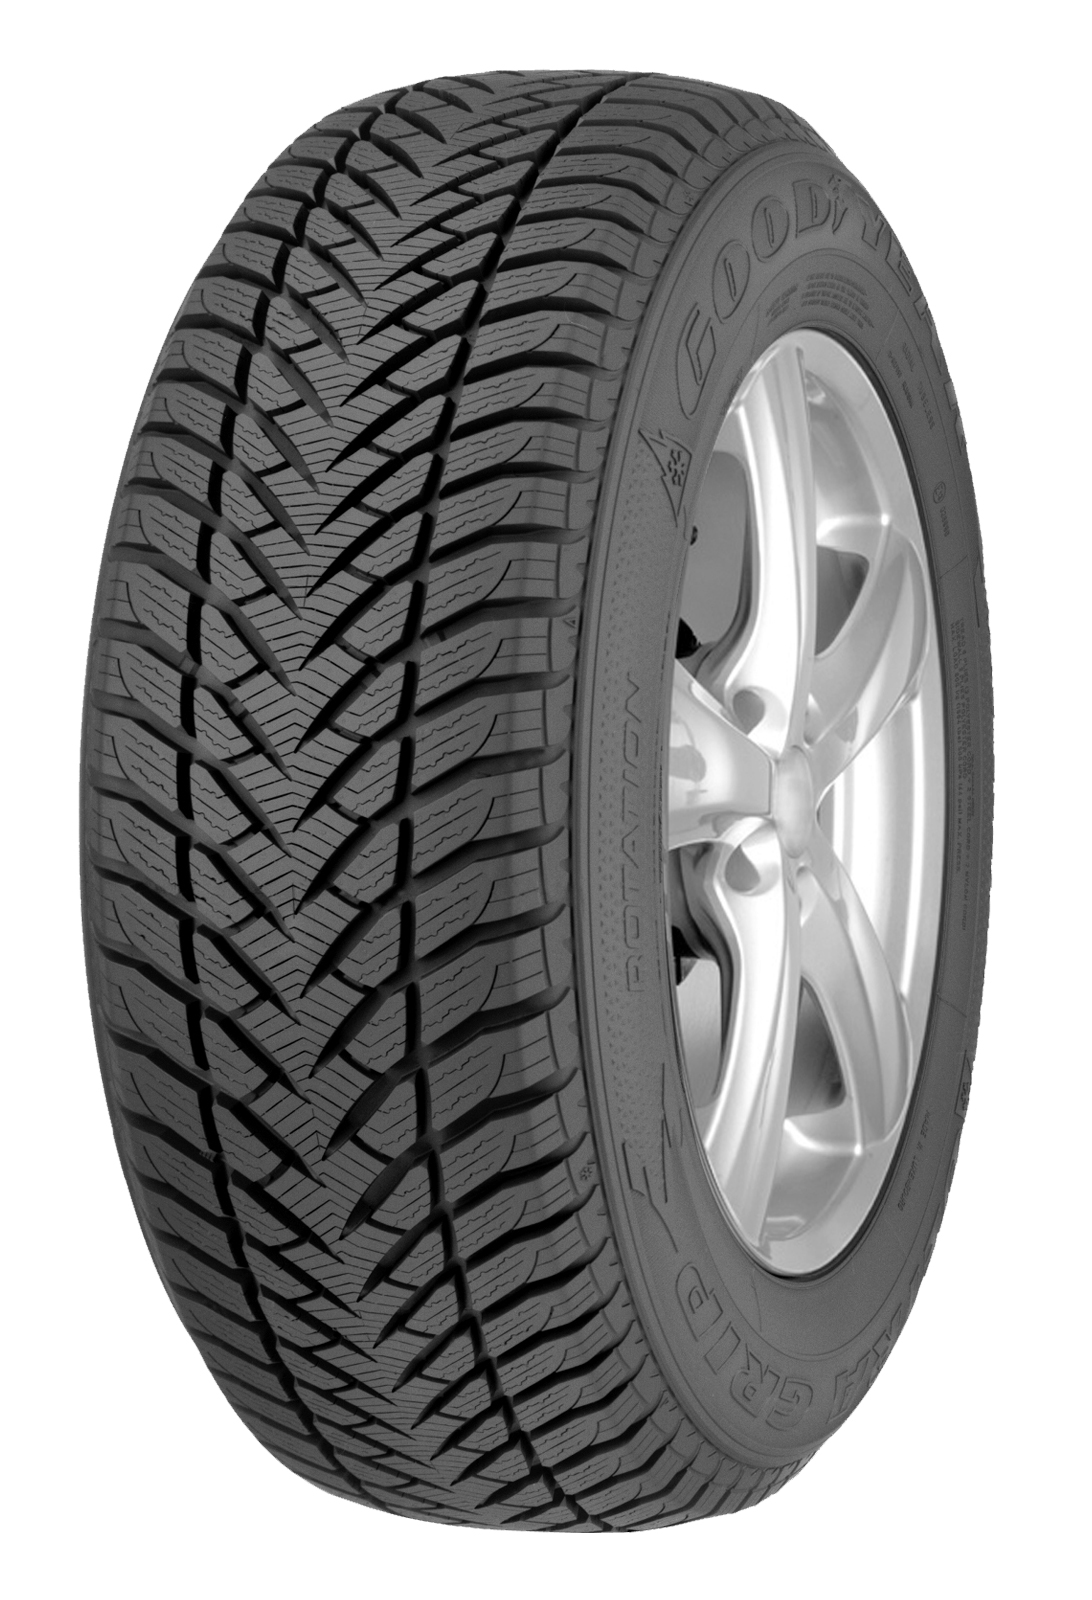 Gomme Nuove Goodyear 255/55 R18 109H ULTGRI * FP M+S pneumatici nuovi Invernale